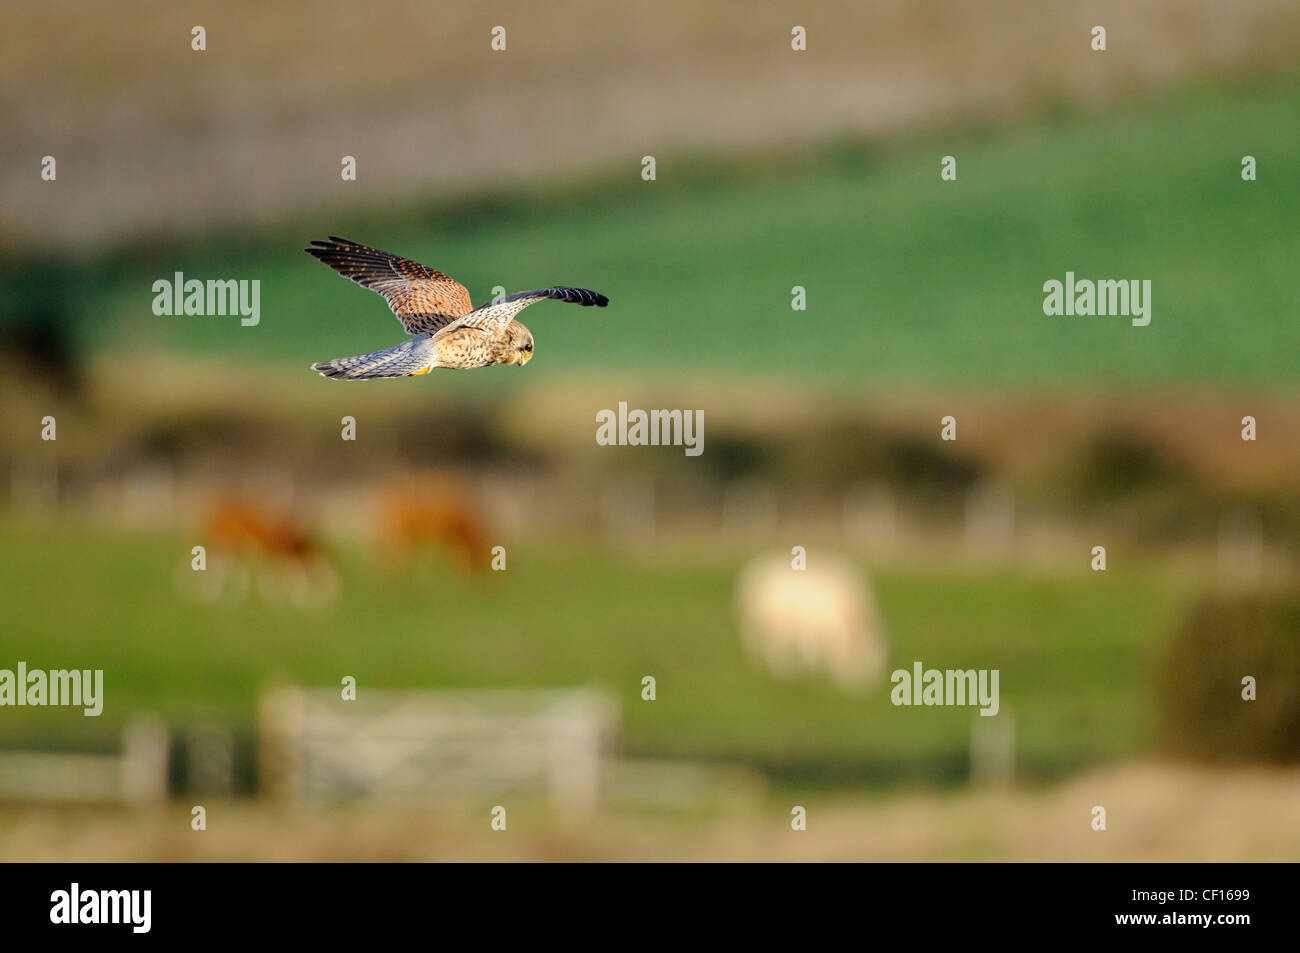 kestrel, falco tinnunculus, female hunting over pastureland, with grazing livestock in distance, Norfolk, England, - Stock Image